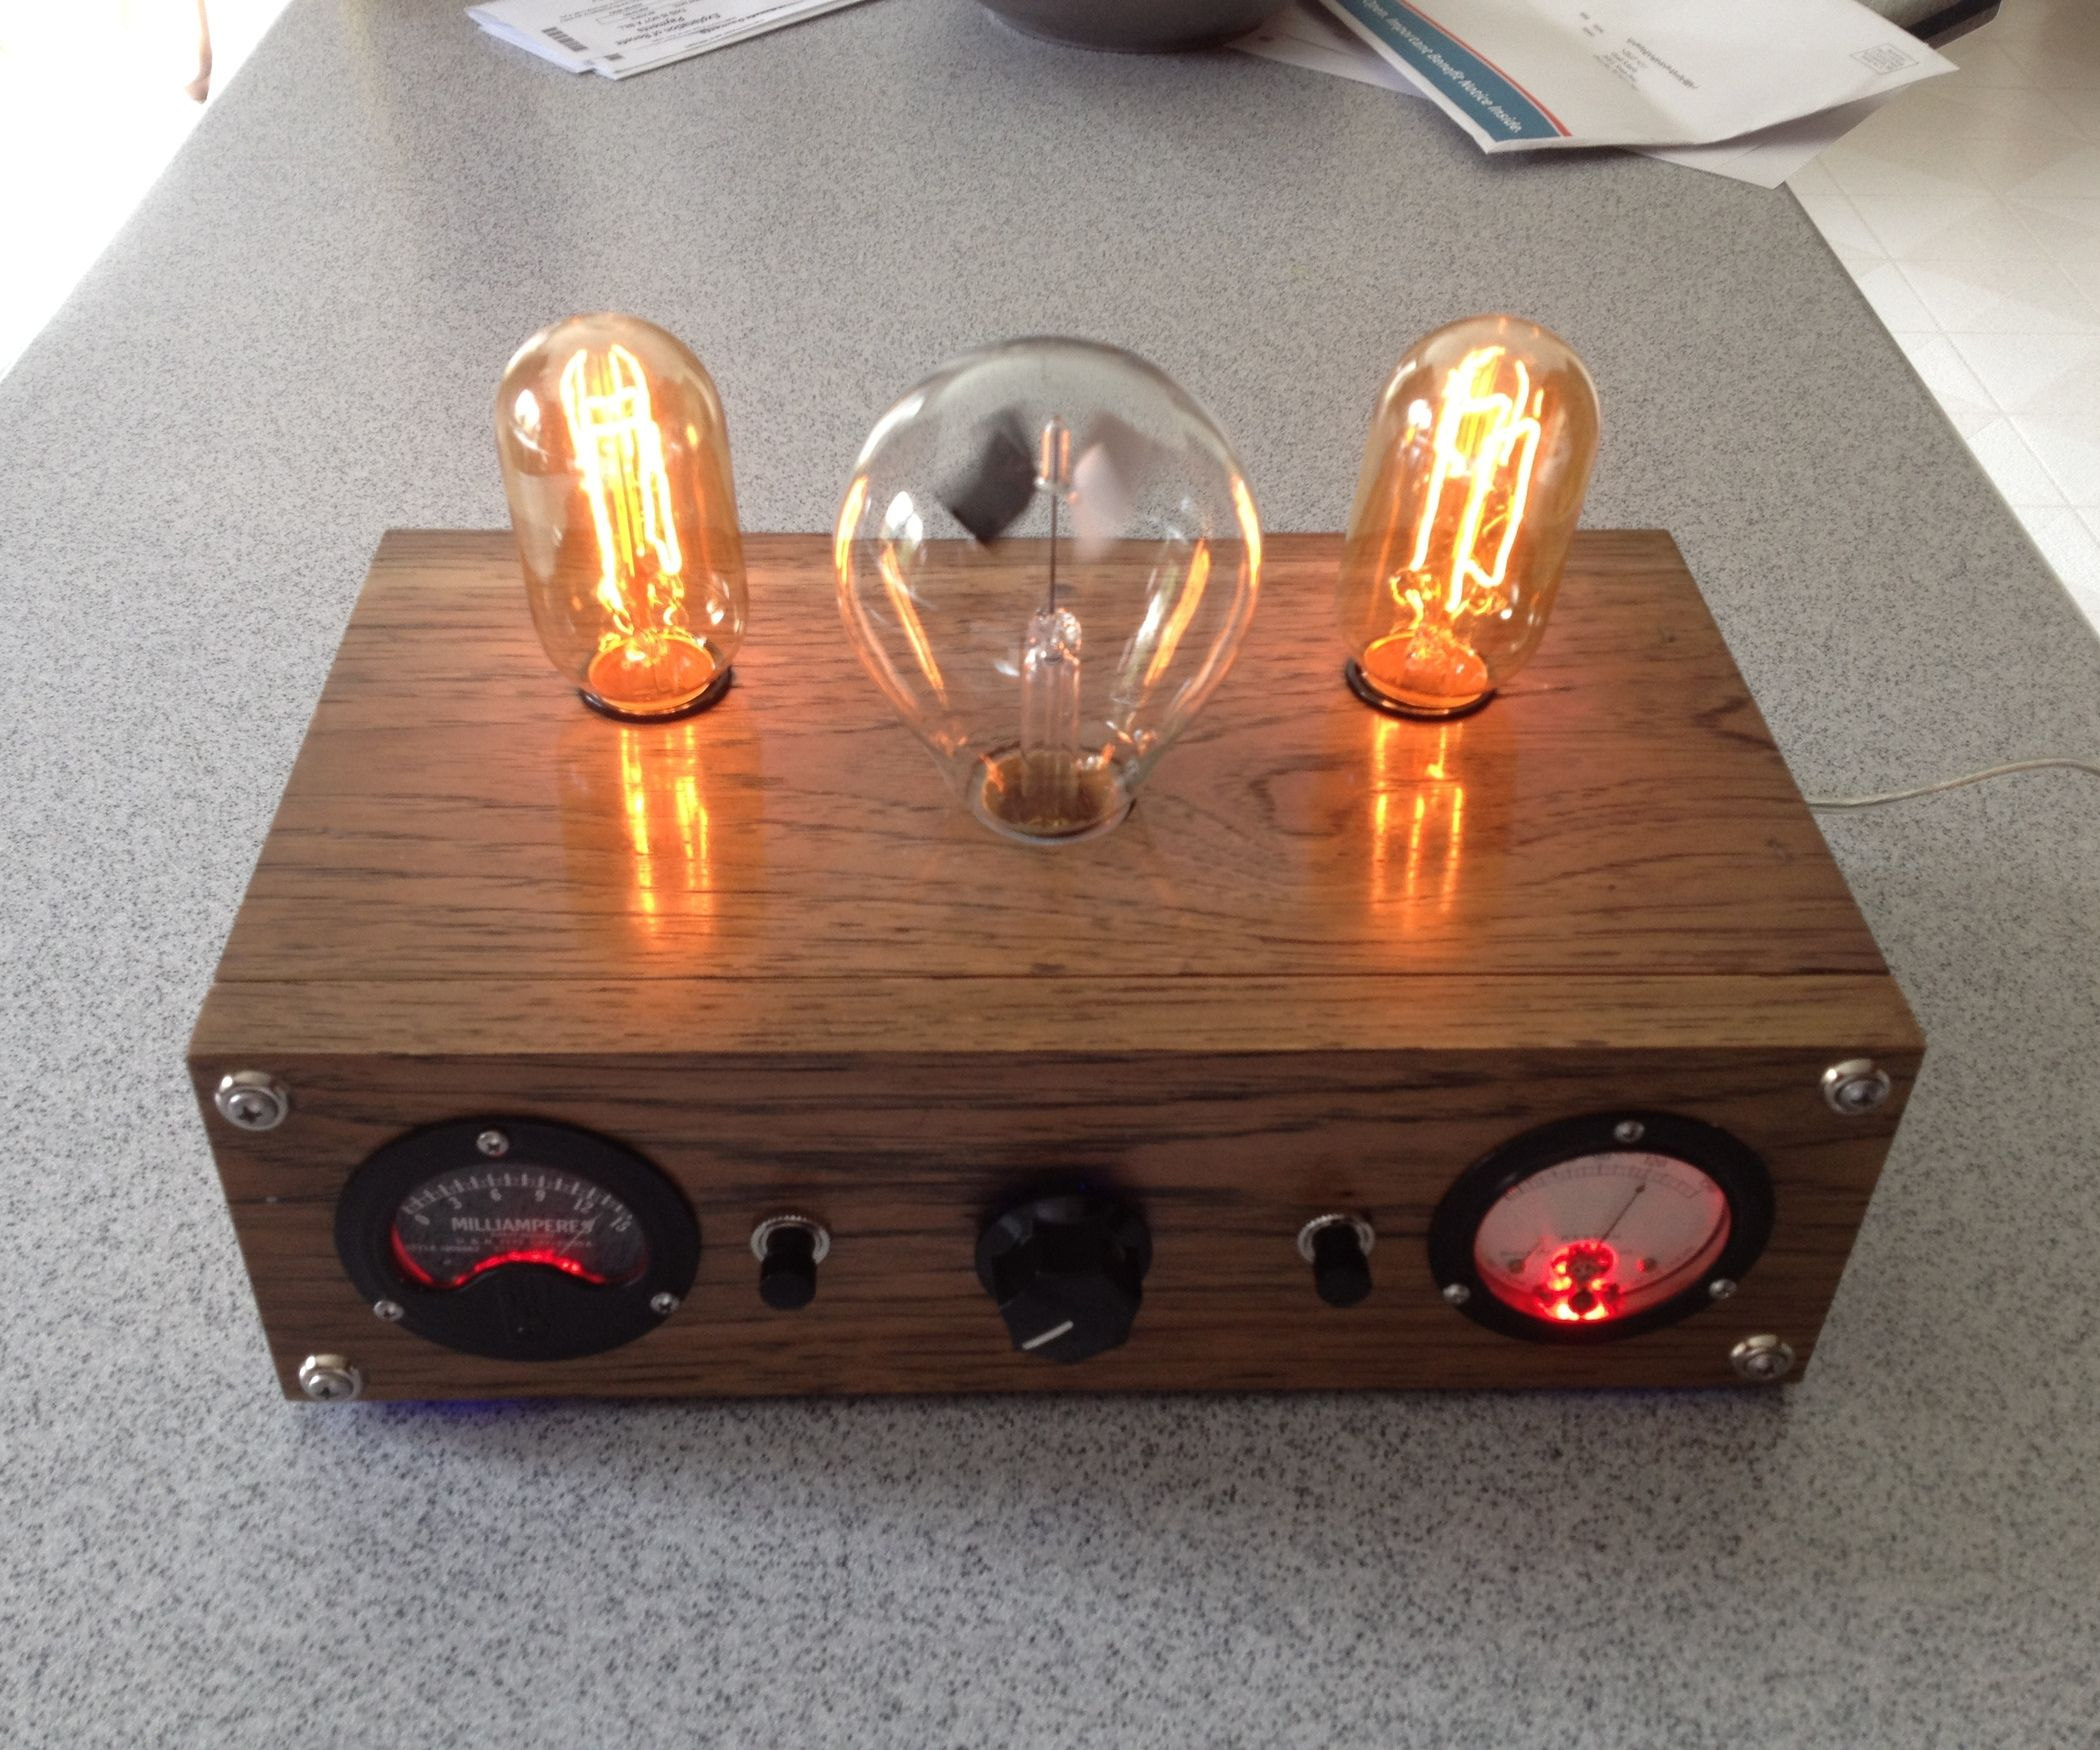 Technology Steampunk Lamp Featured Instructables   Explore The Biggest How  To And DIY Community Where People Make And Share Inspiring, Entertaining,  ...